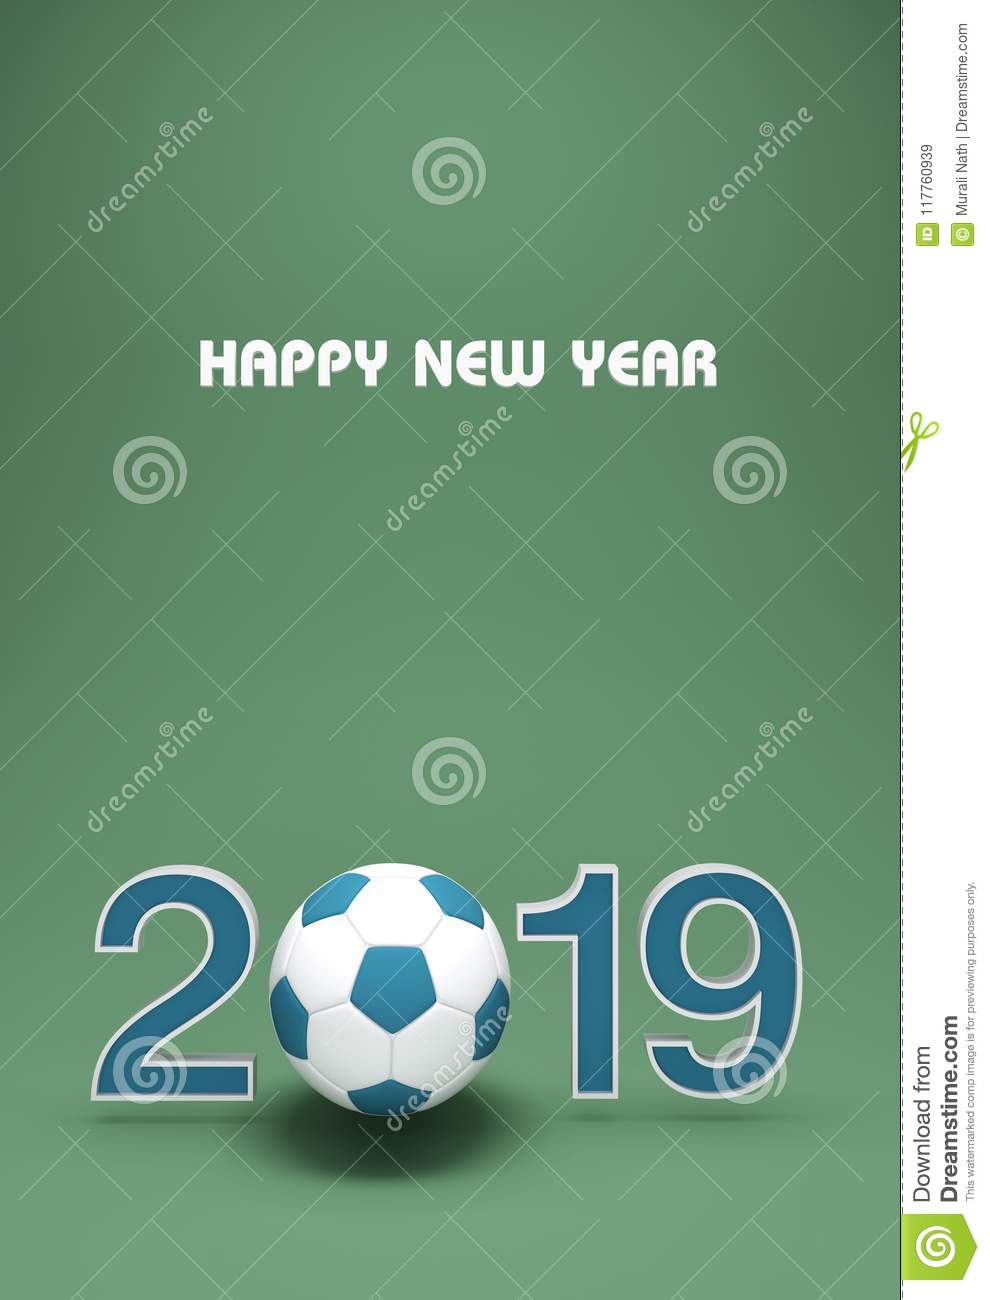 New Year 2019 Creative Design Concept With Football Stock